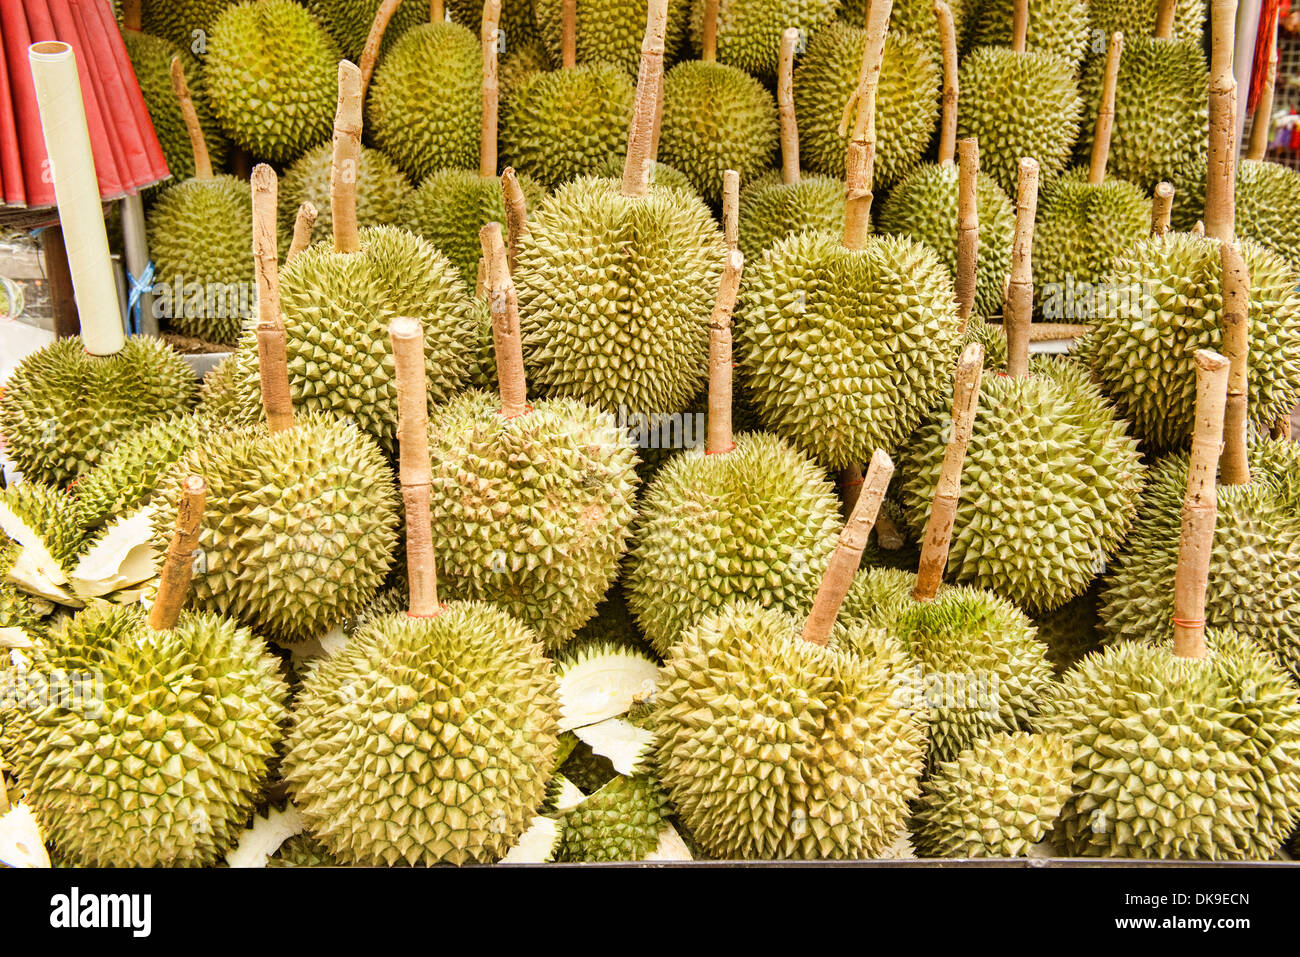 durian for sale in Chinatown in Bangkok, Thailand - Stock Image